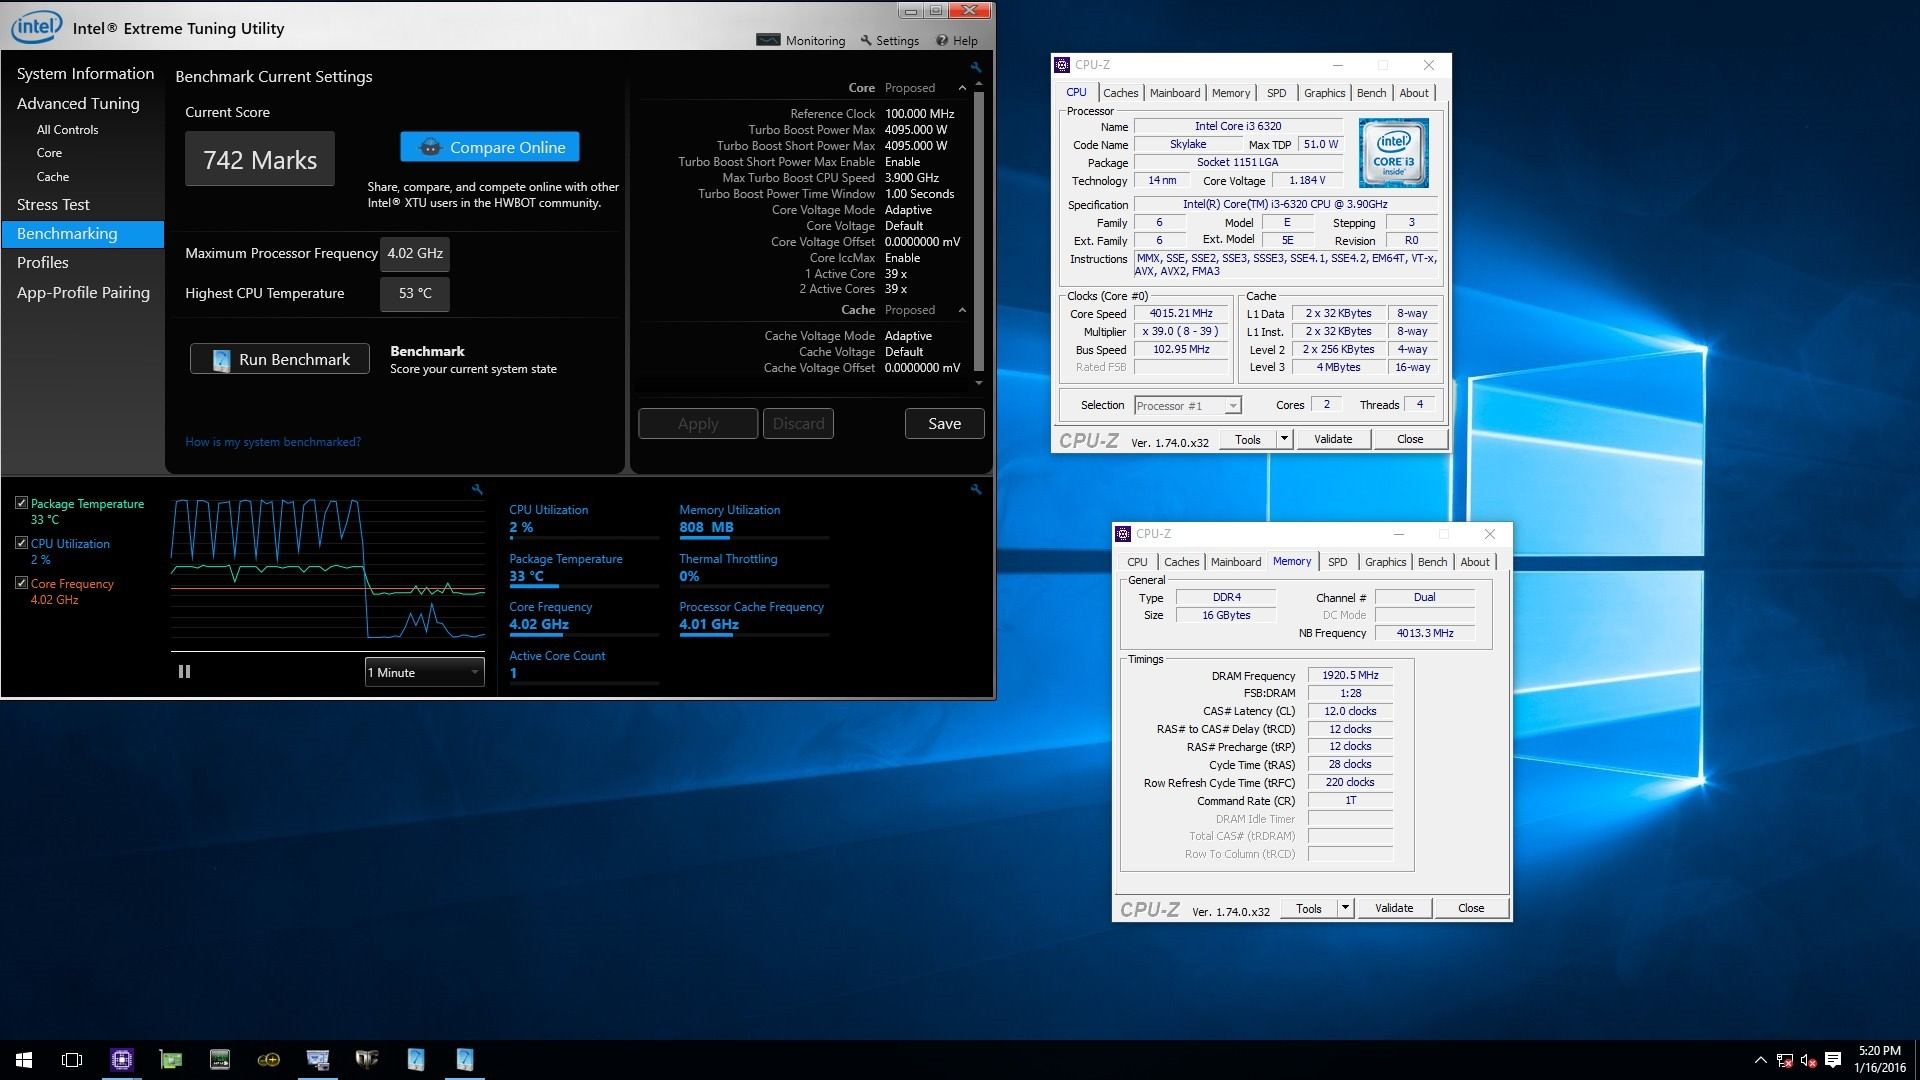 sskmercer's 742 marks XTU run with Core i3 6320 @ 4015.2MHz